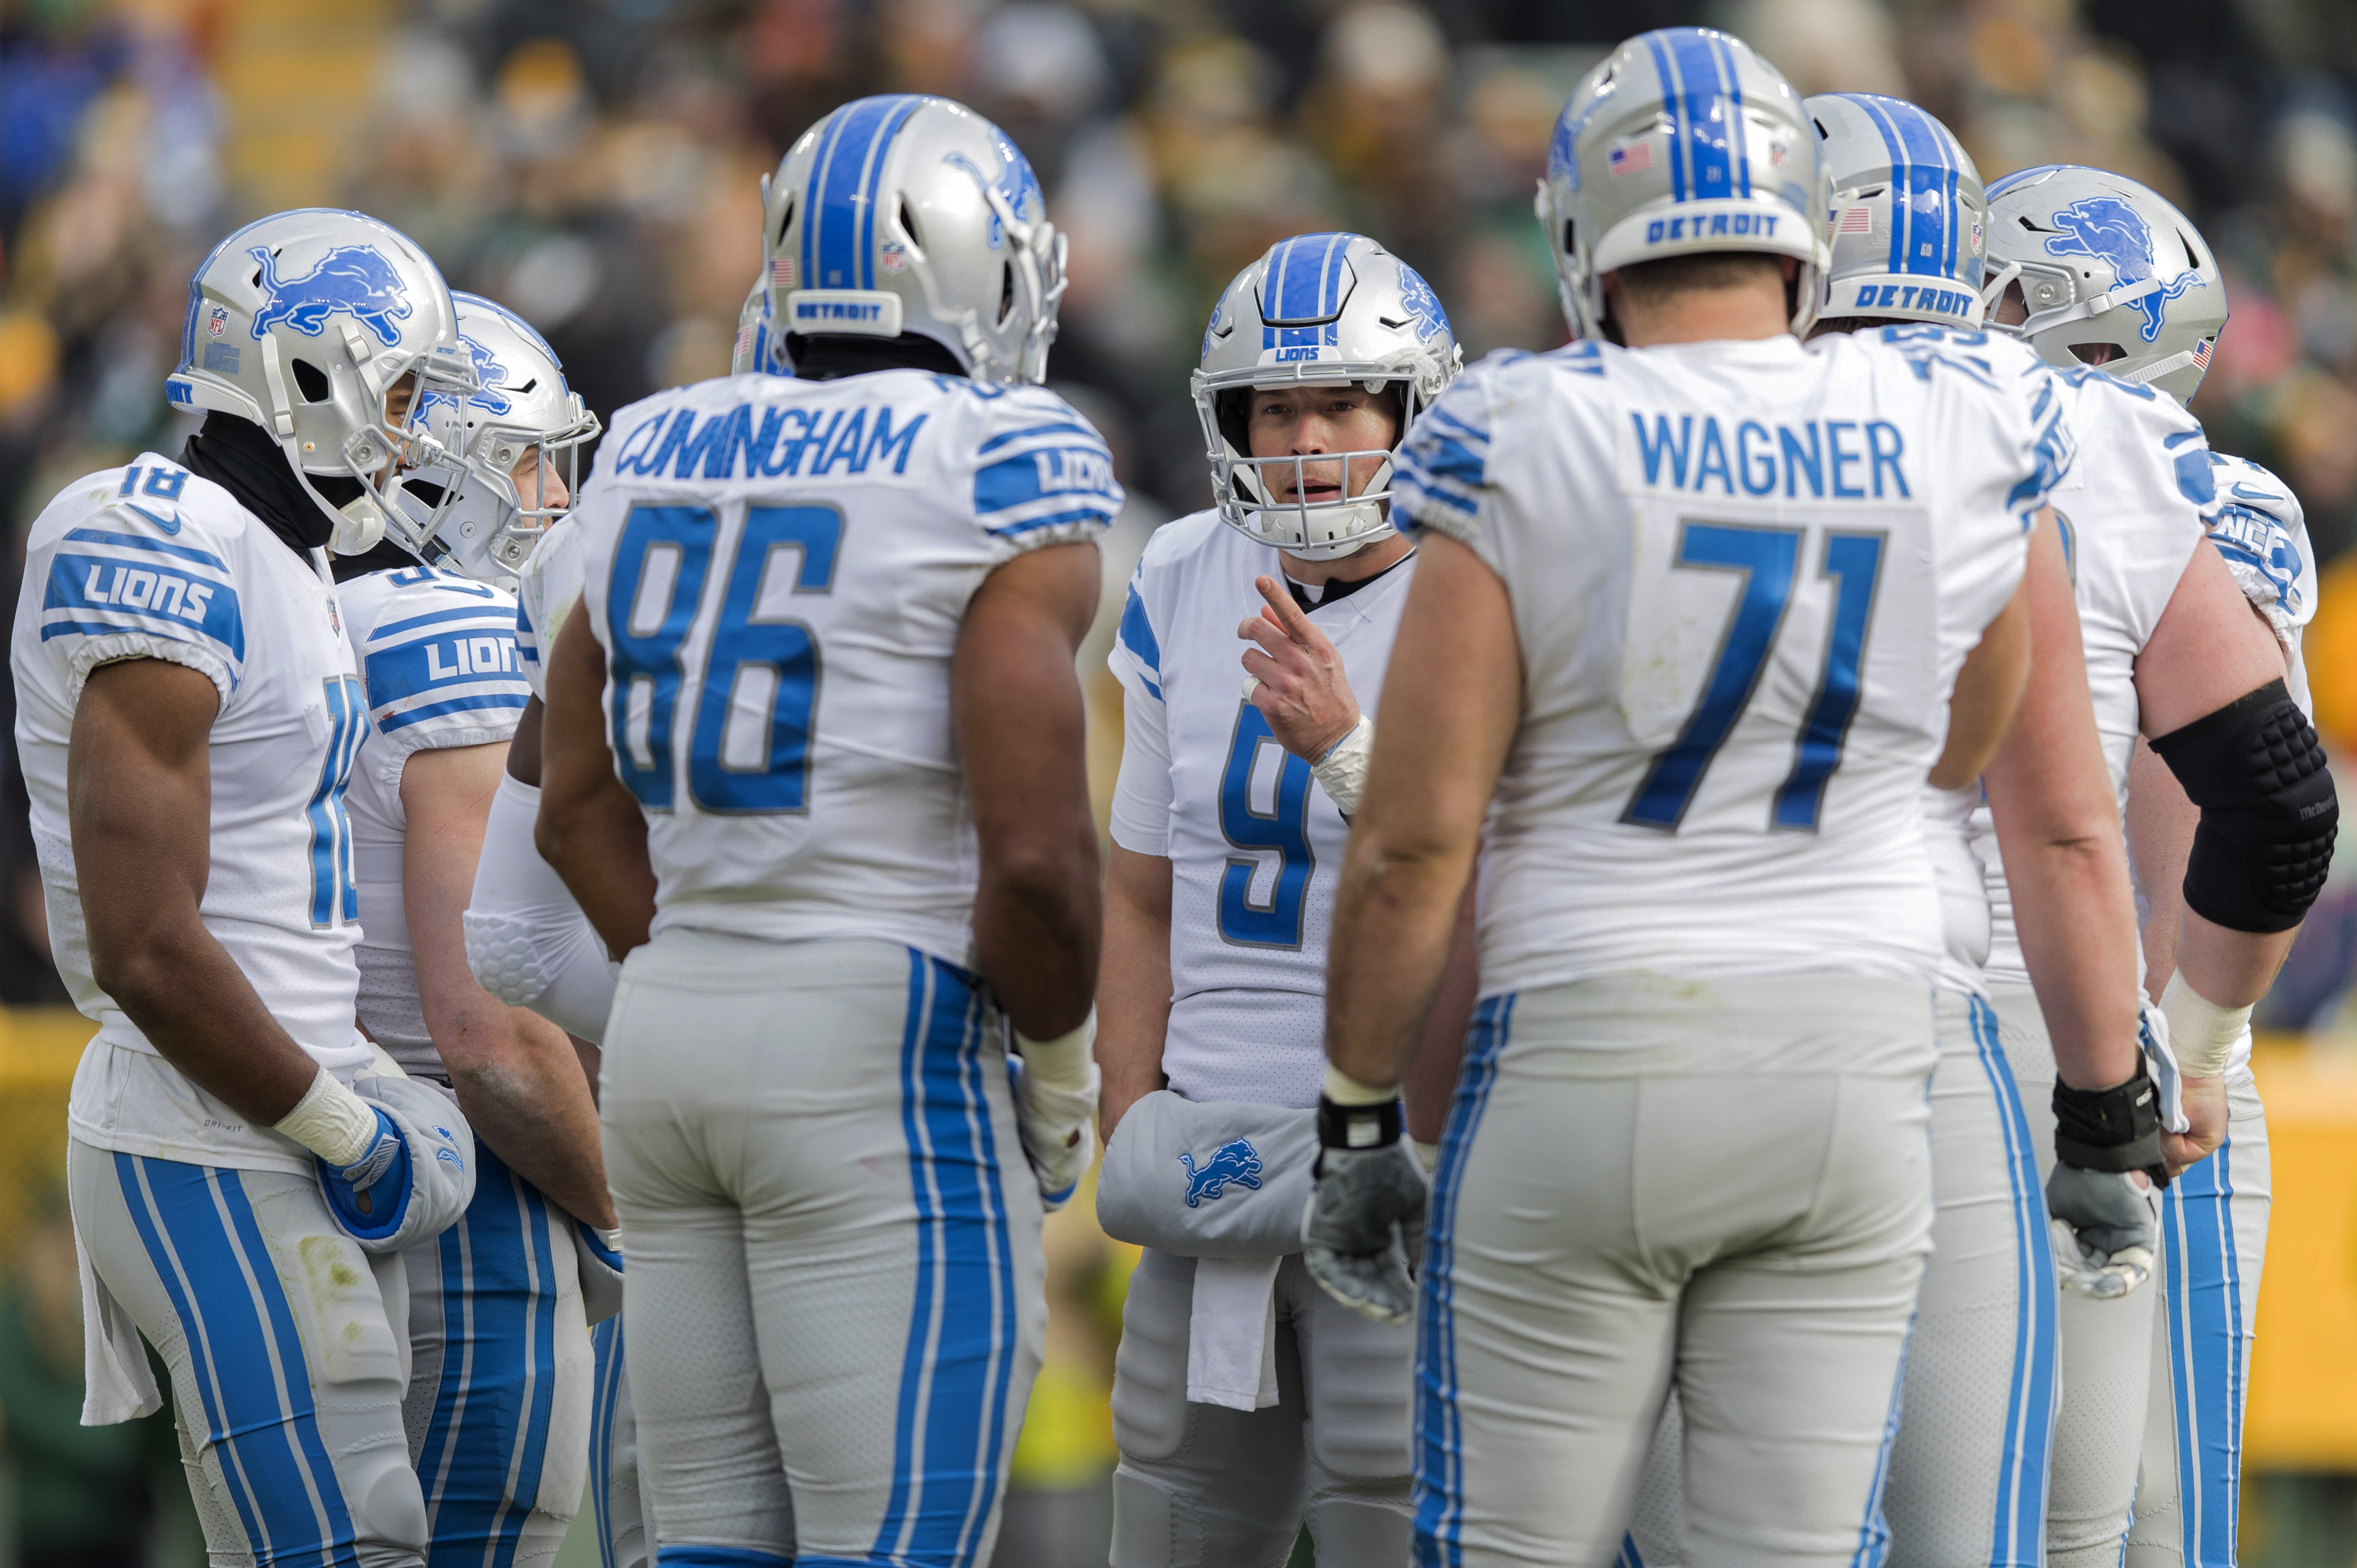 promo code f8a6c 52d06 2019 Detroit Lions free agency tracker  Latest signings, trades, more